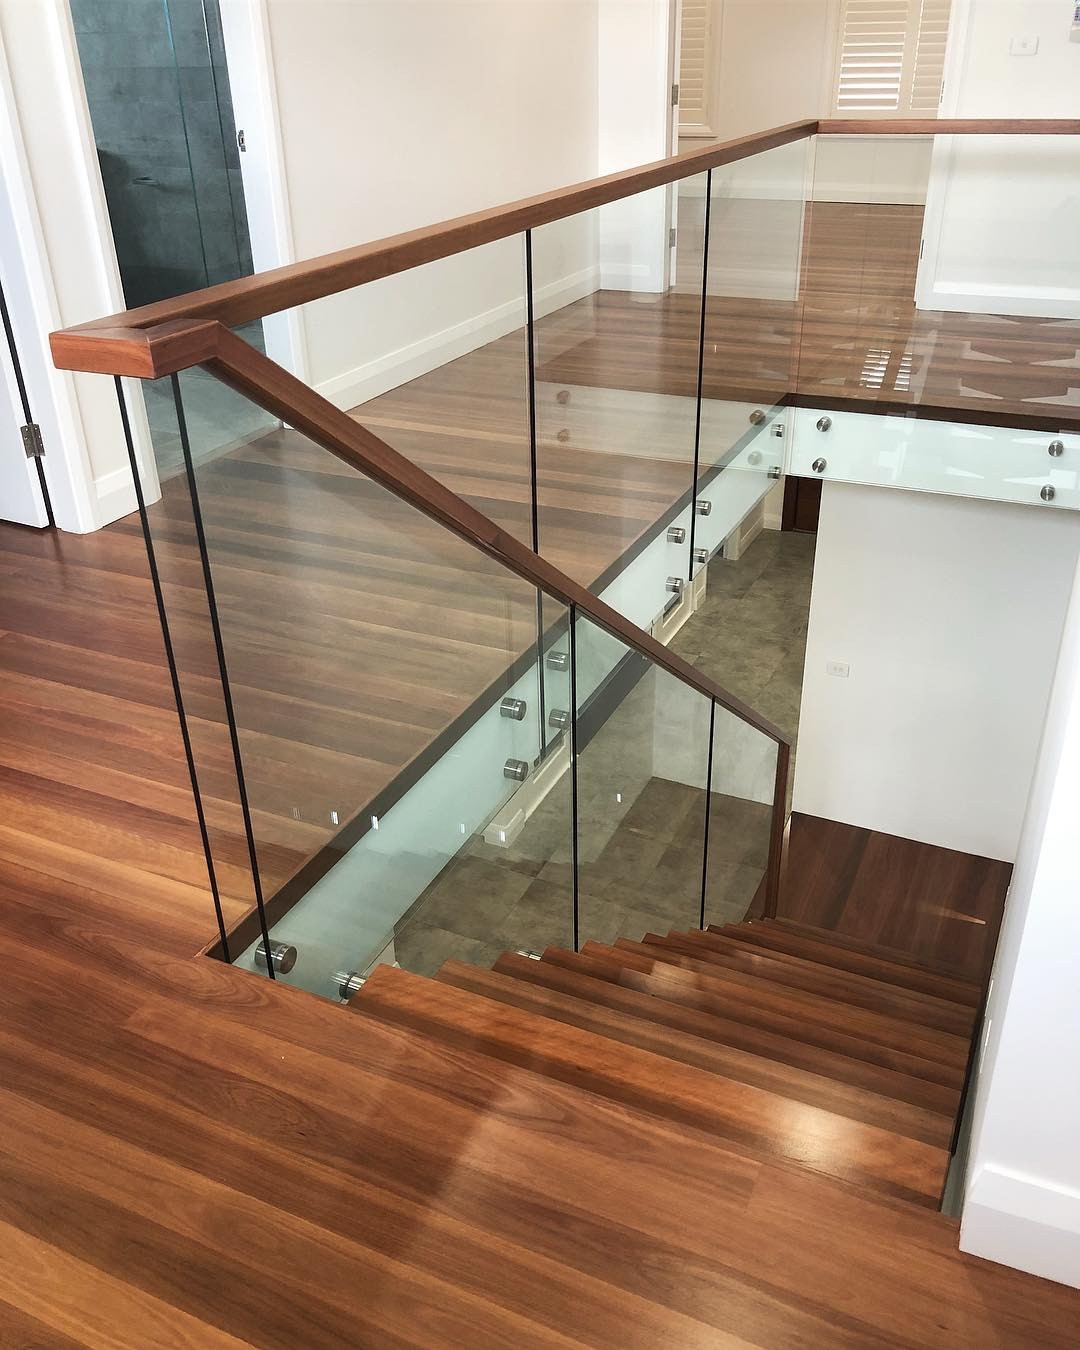 Designer Staircase Monostringer steel spine staircase with solid Australian Hardwood tread, metal Baluster and Hardwood handmade handrail supplied and installed by Timber Floors Pty Ltd